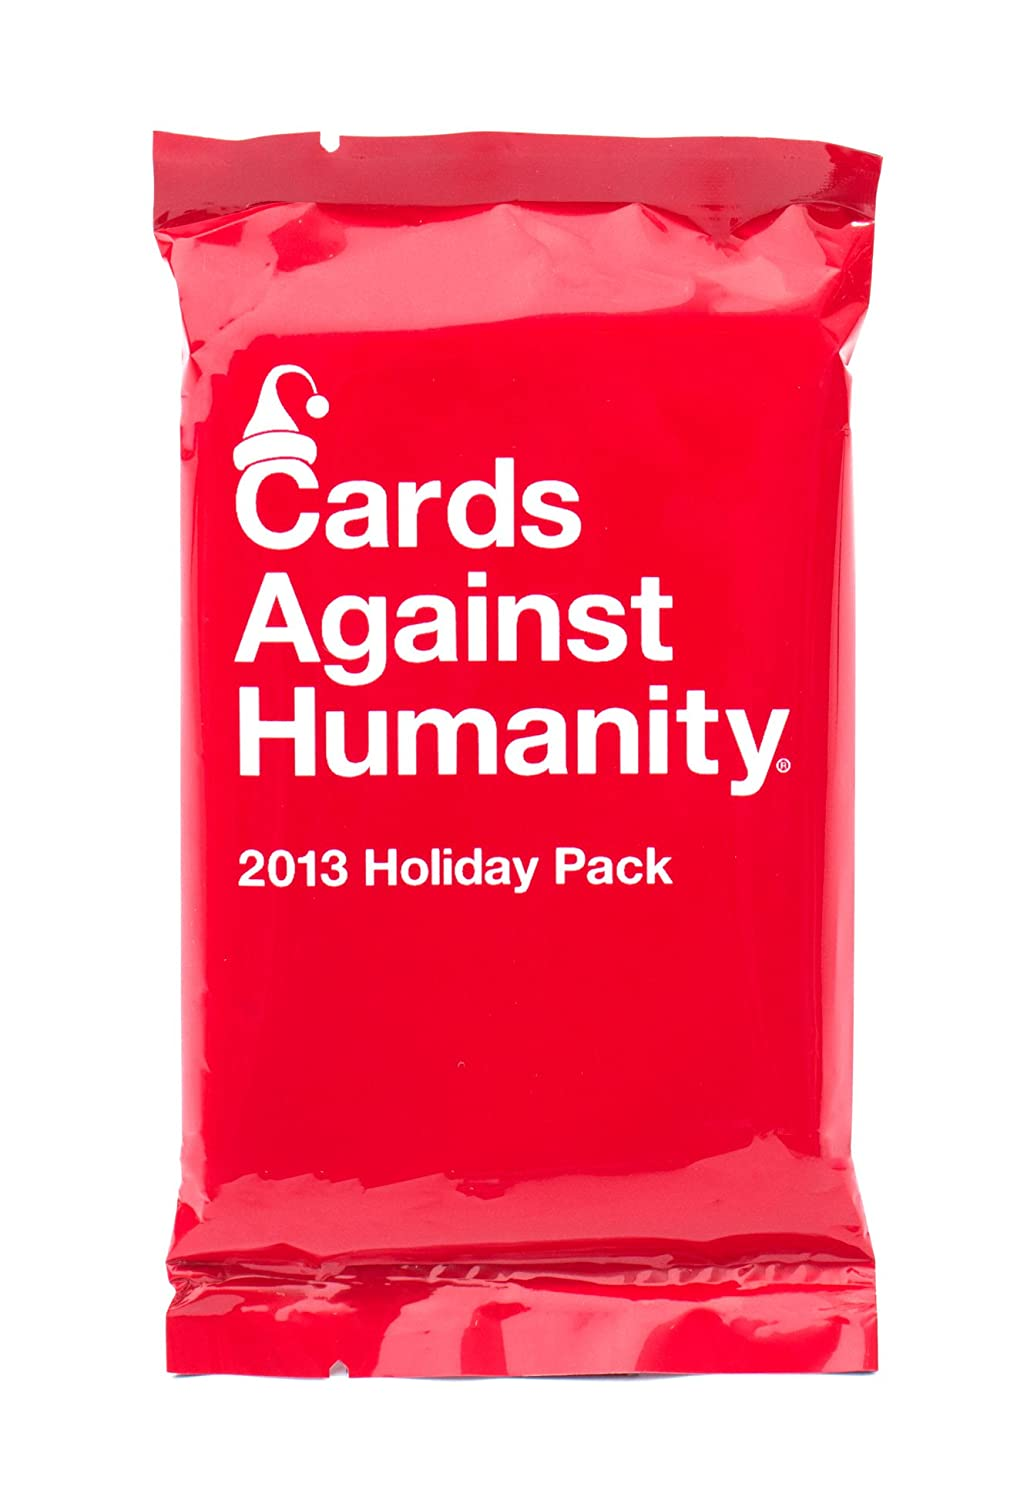 Amazon.com: Cards Against Humanity: 2013 Holiday Pack: Toys & Games